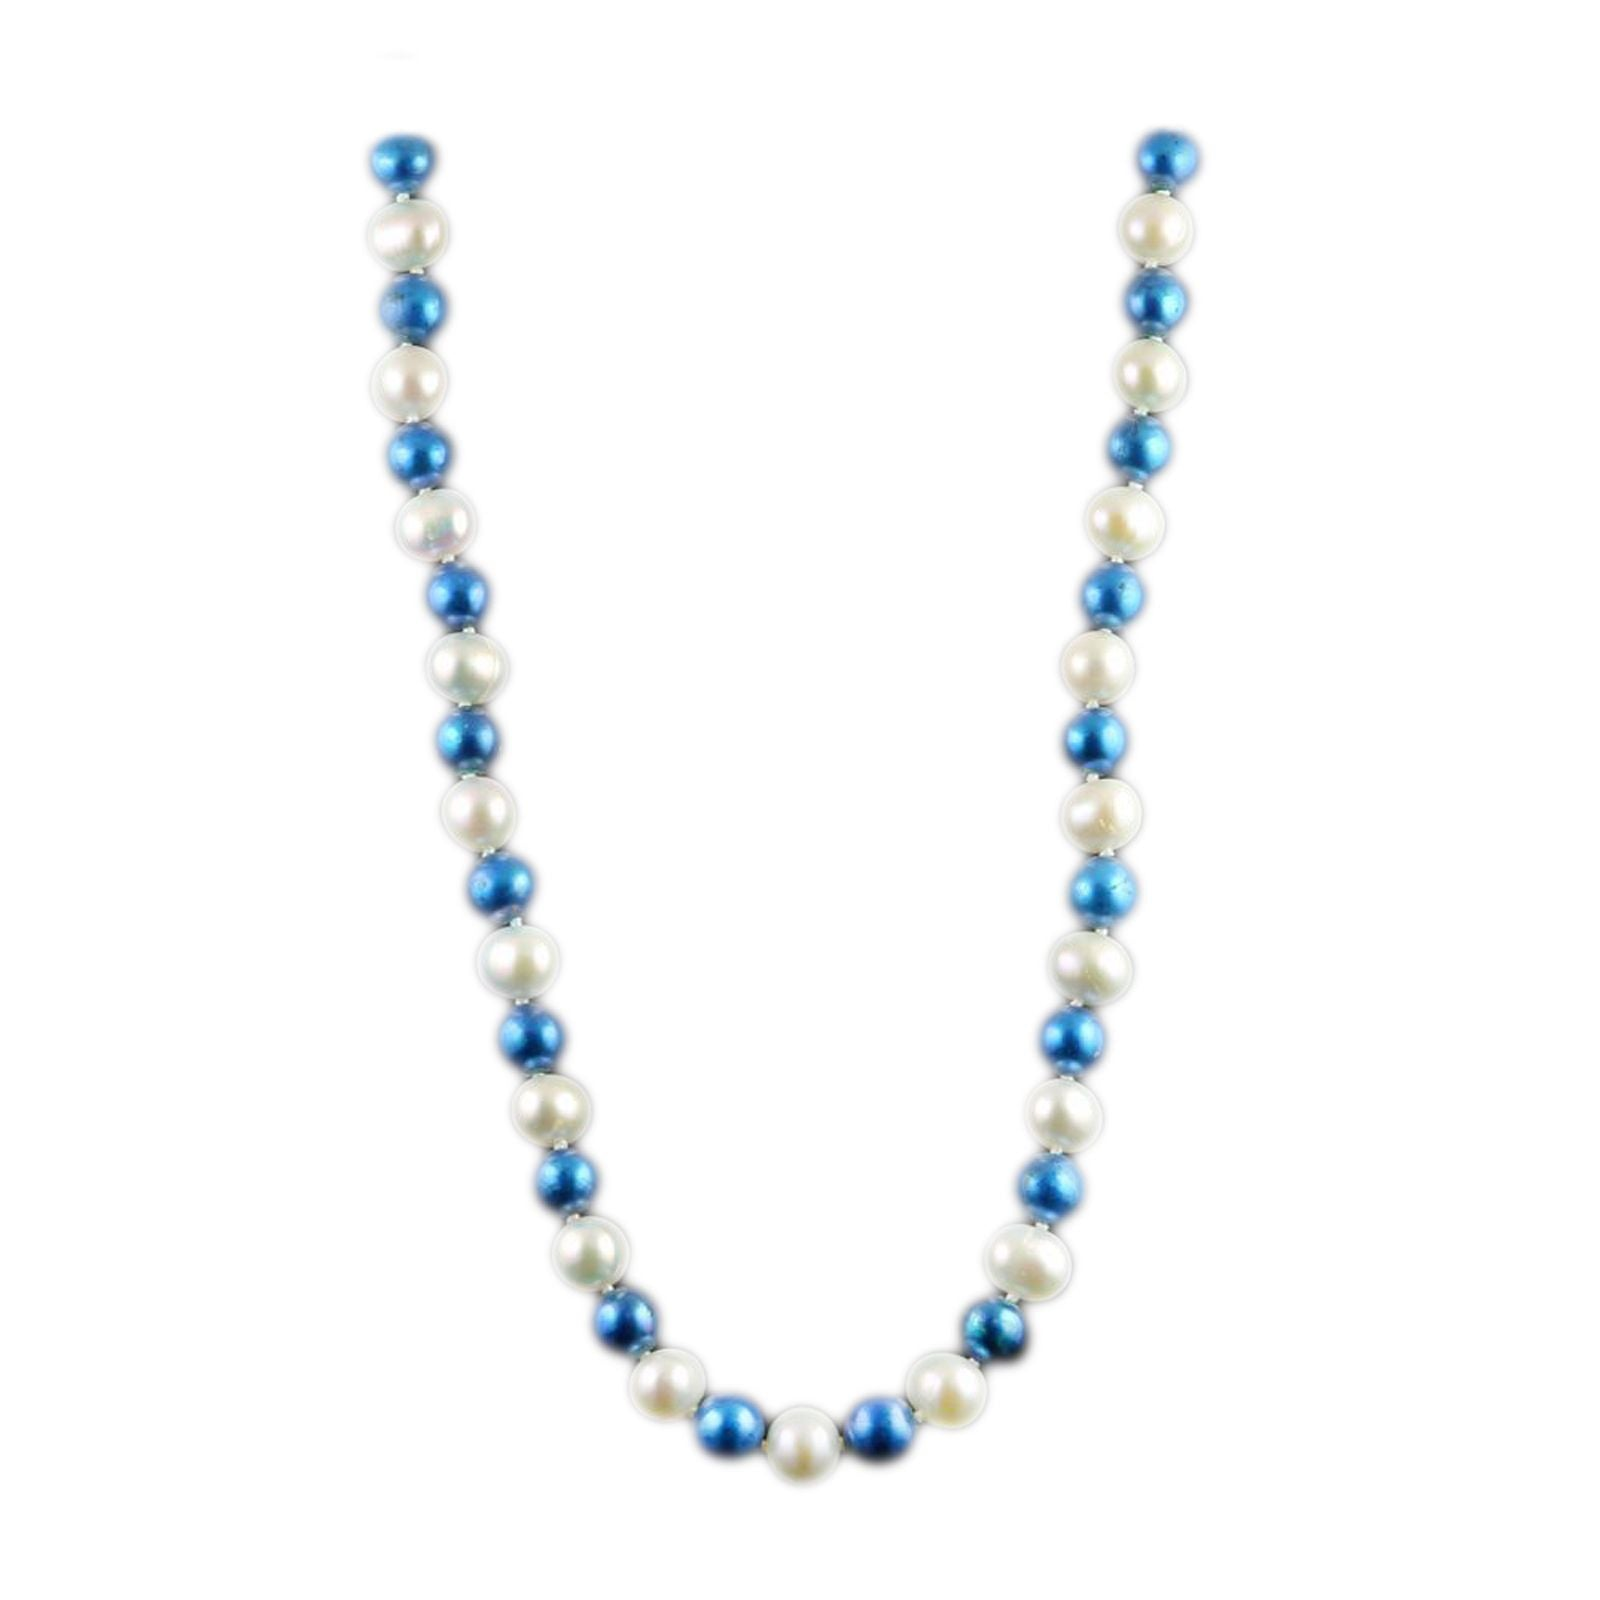 SPECIAL! Collegiate University of Kentucky Blue and White Pearl Necklace-0